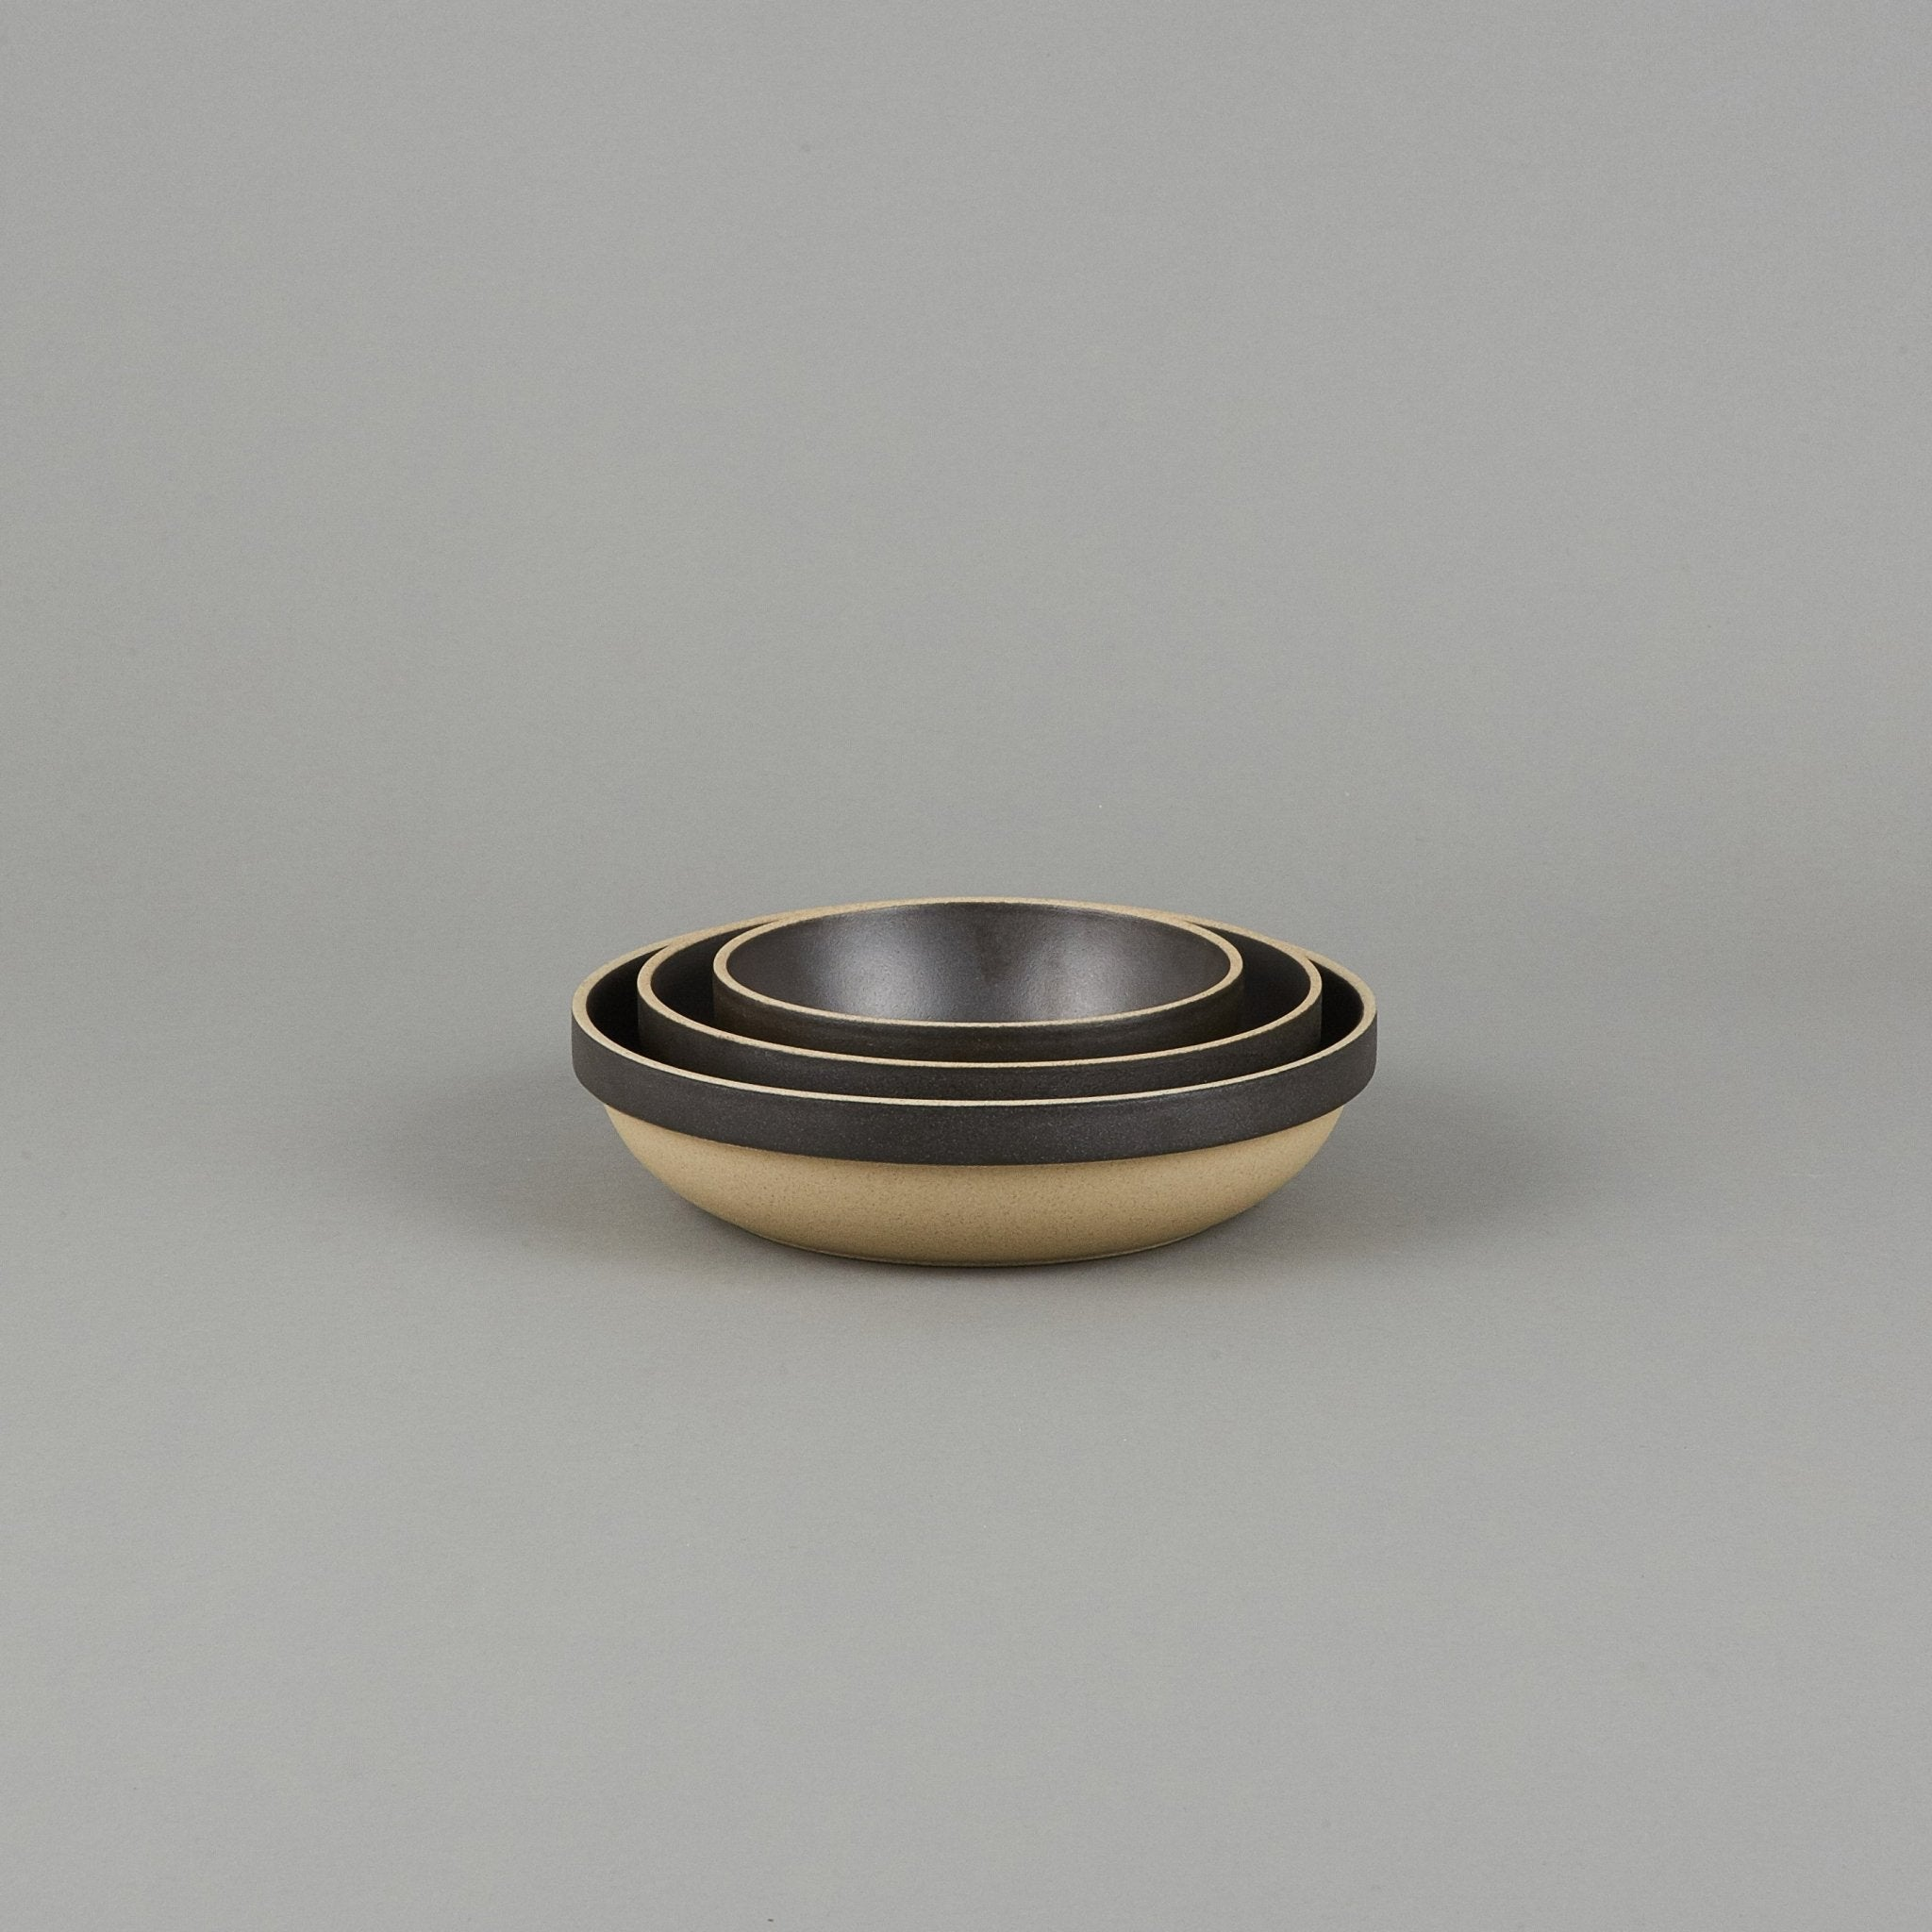 "HPB031 - Round Bowl Black ø 5.5/8"" - tortoise general store"